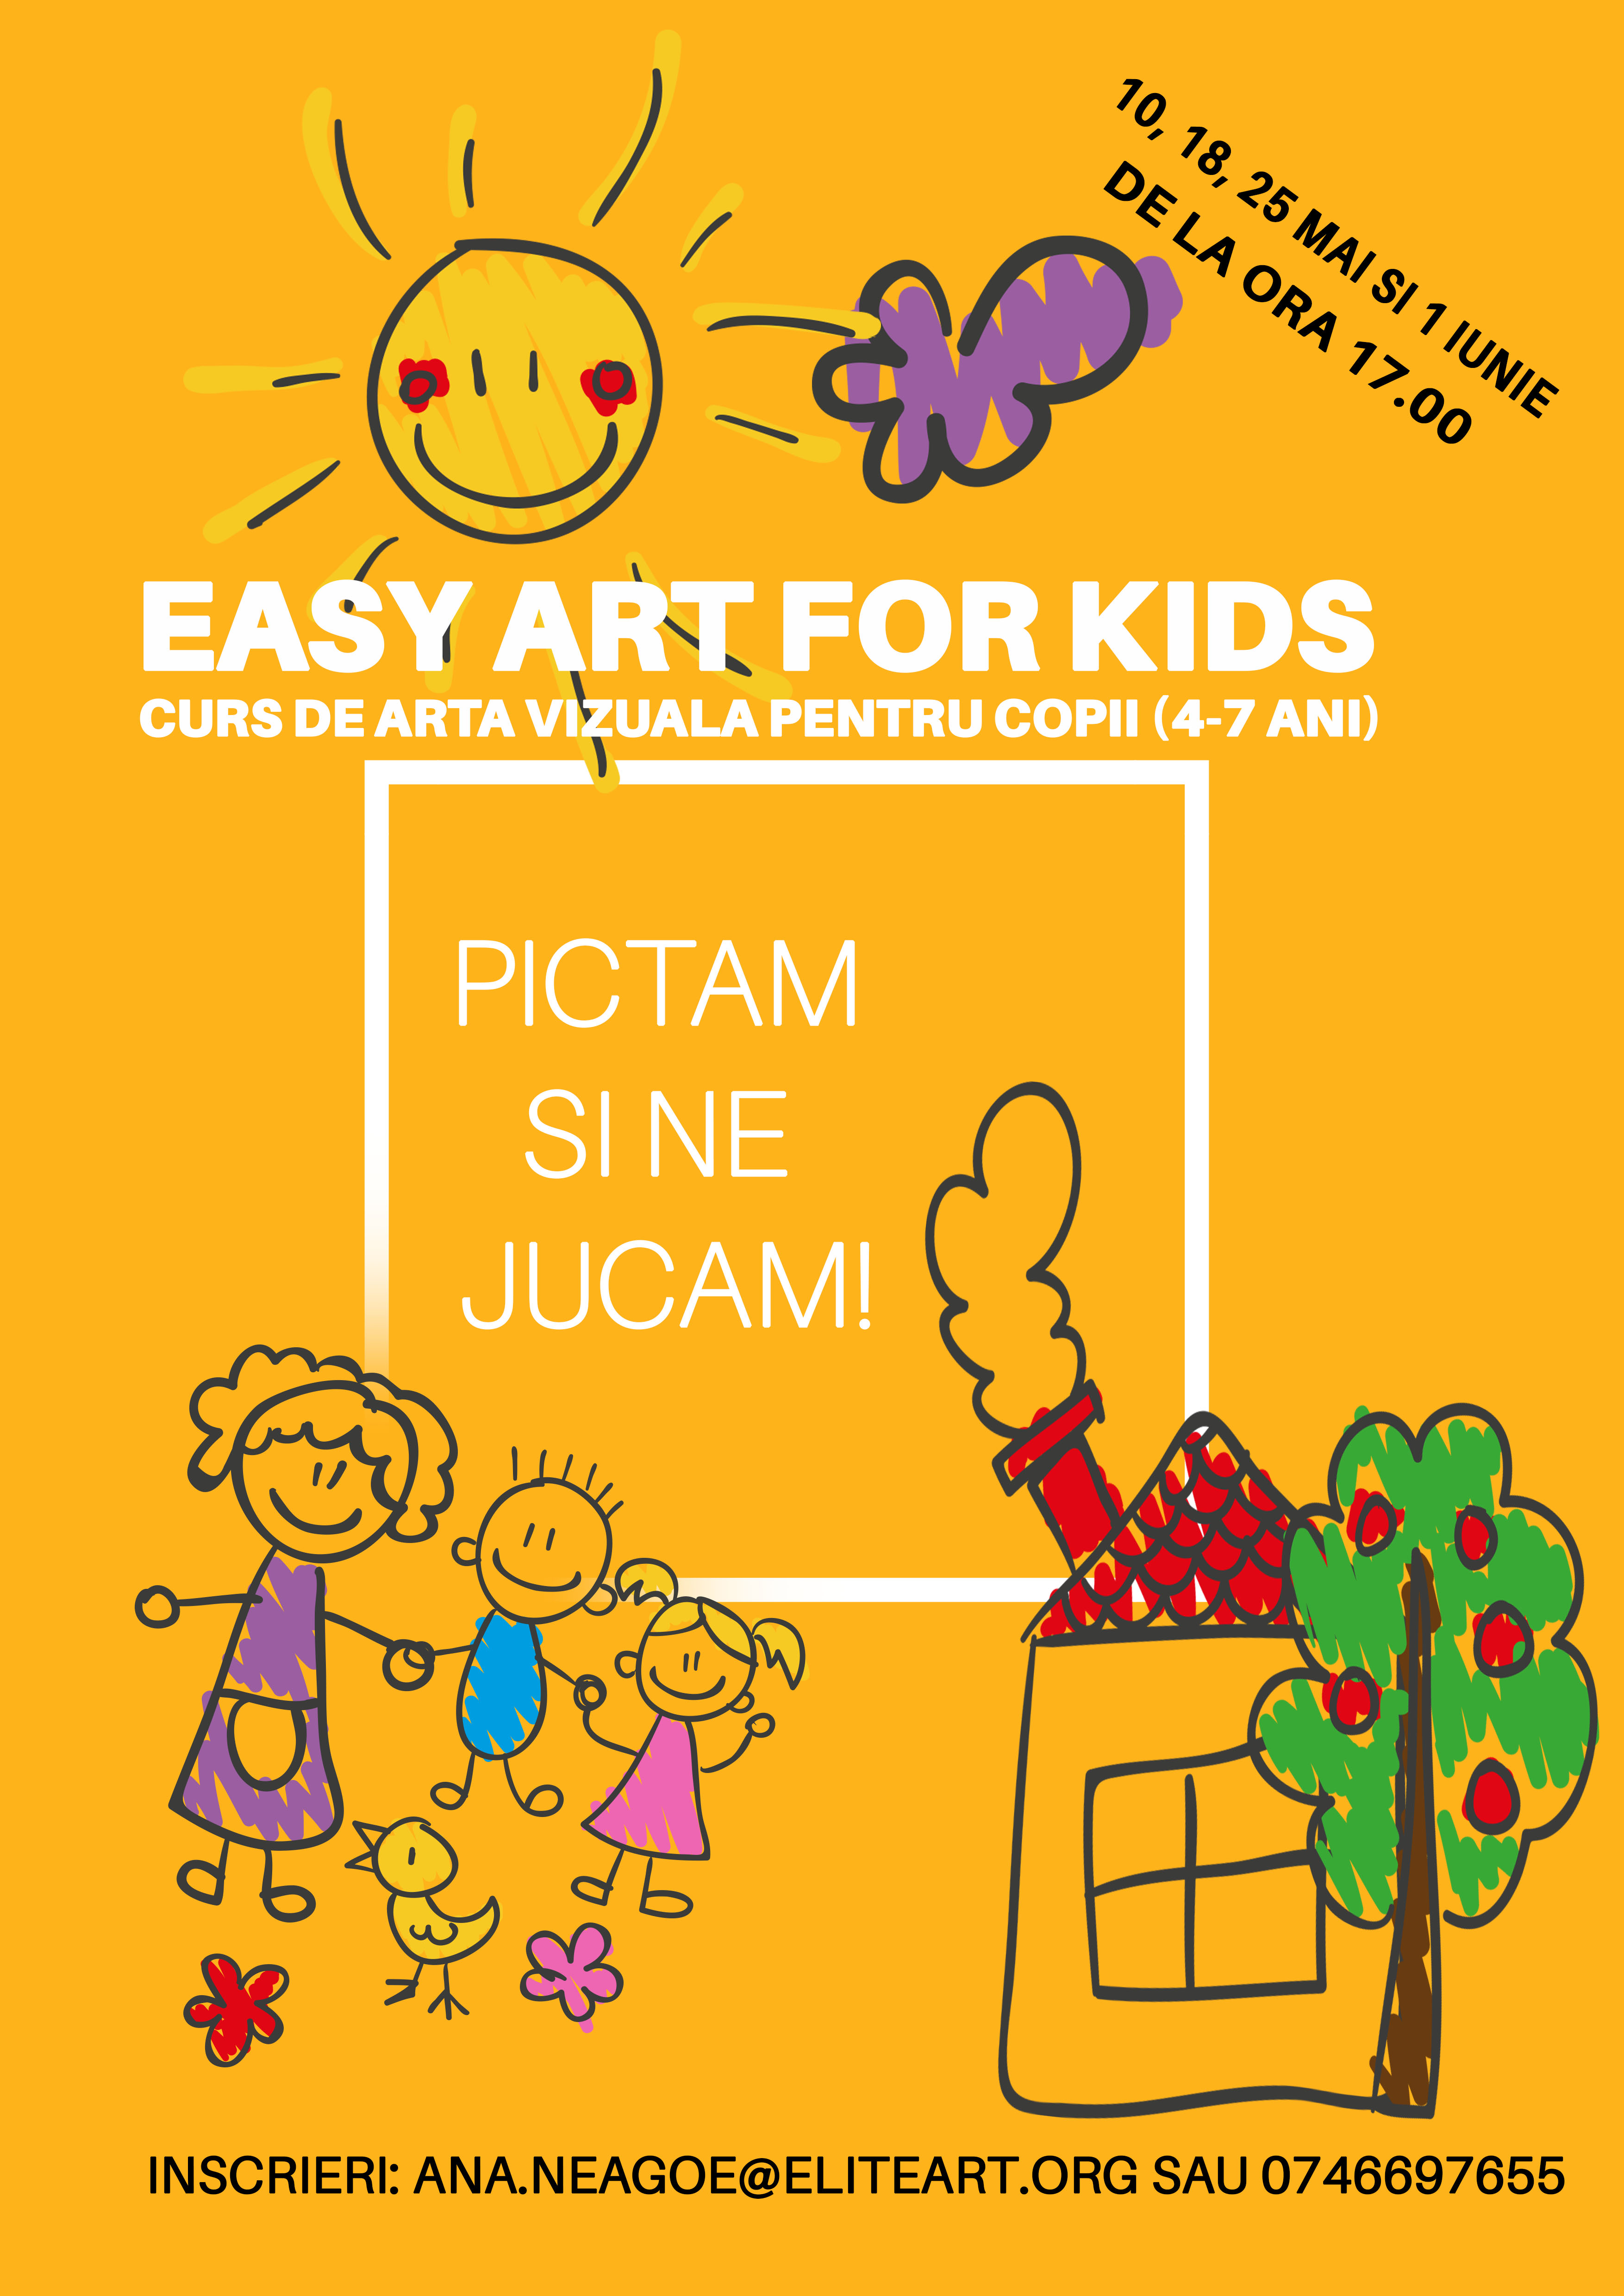 EASY ART FOR KIDS